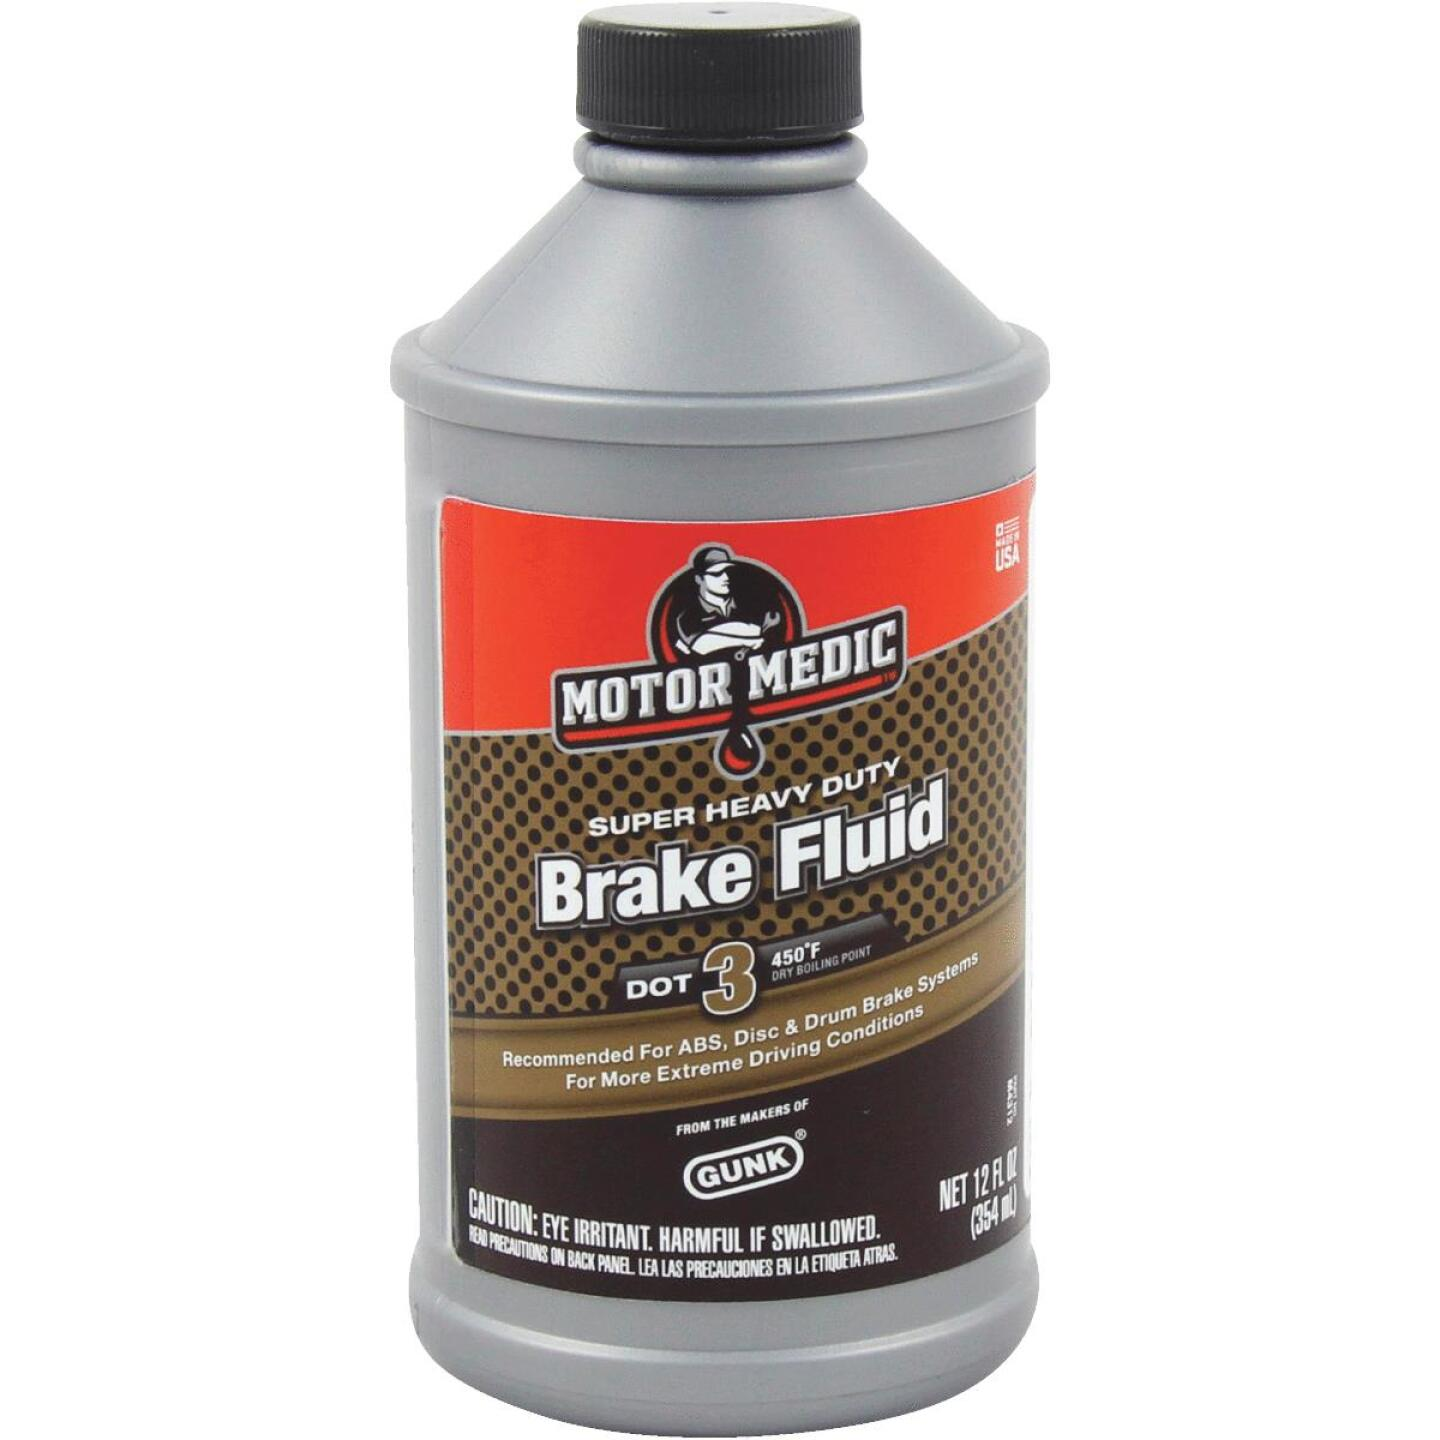 MotorMedic 12 Oz. Super Heavy-Duty DOT 3 Brake Fluid Image 1